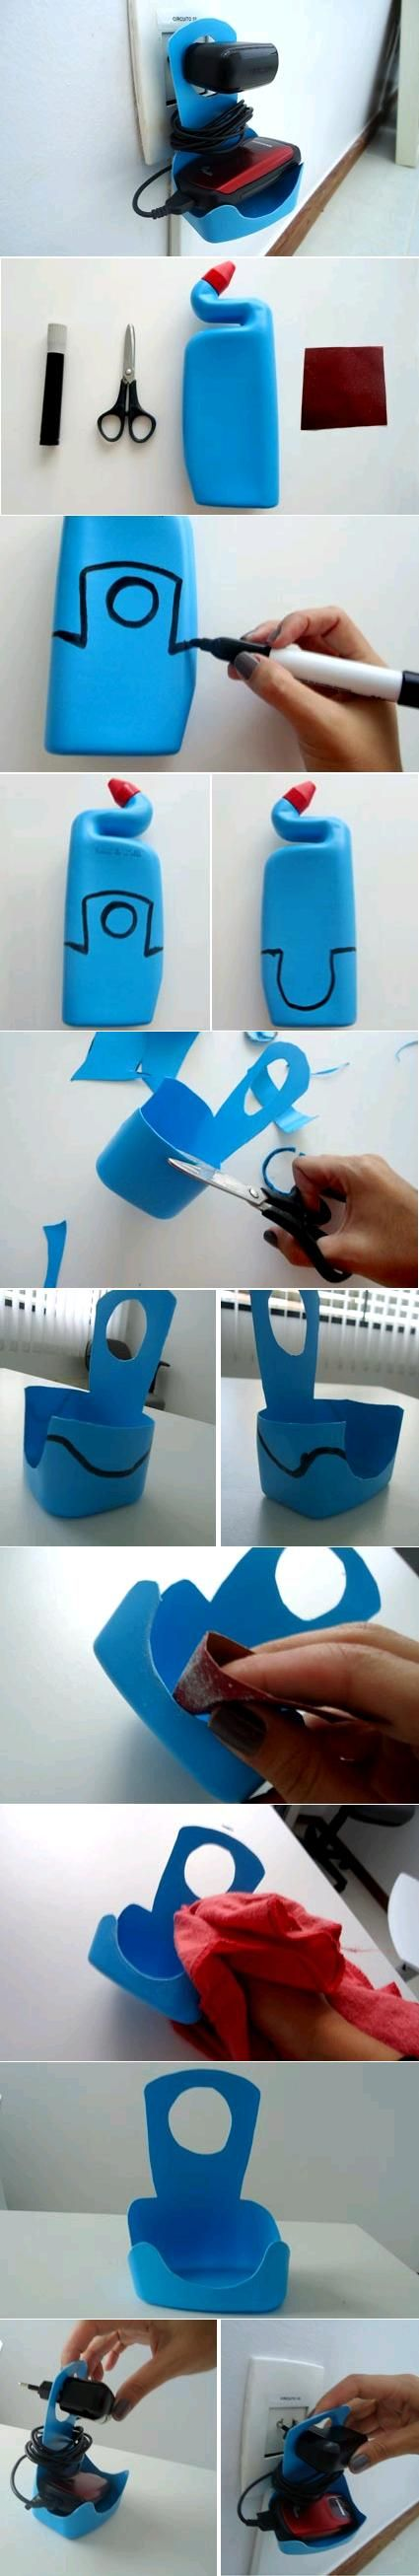 Useful holder from plastic bottle - several different applications